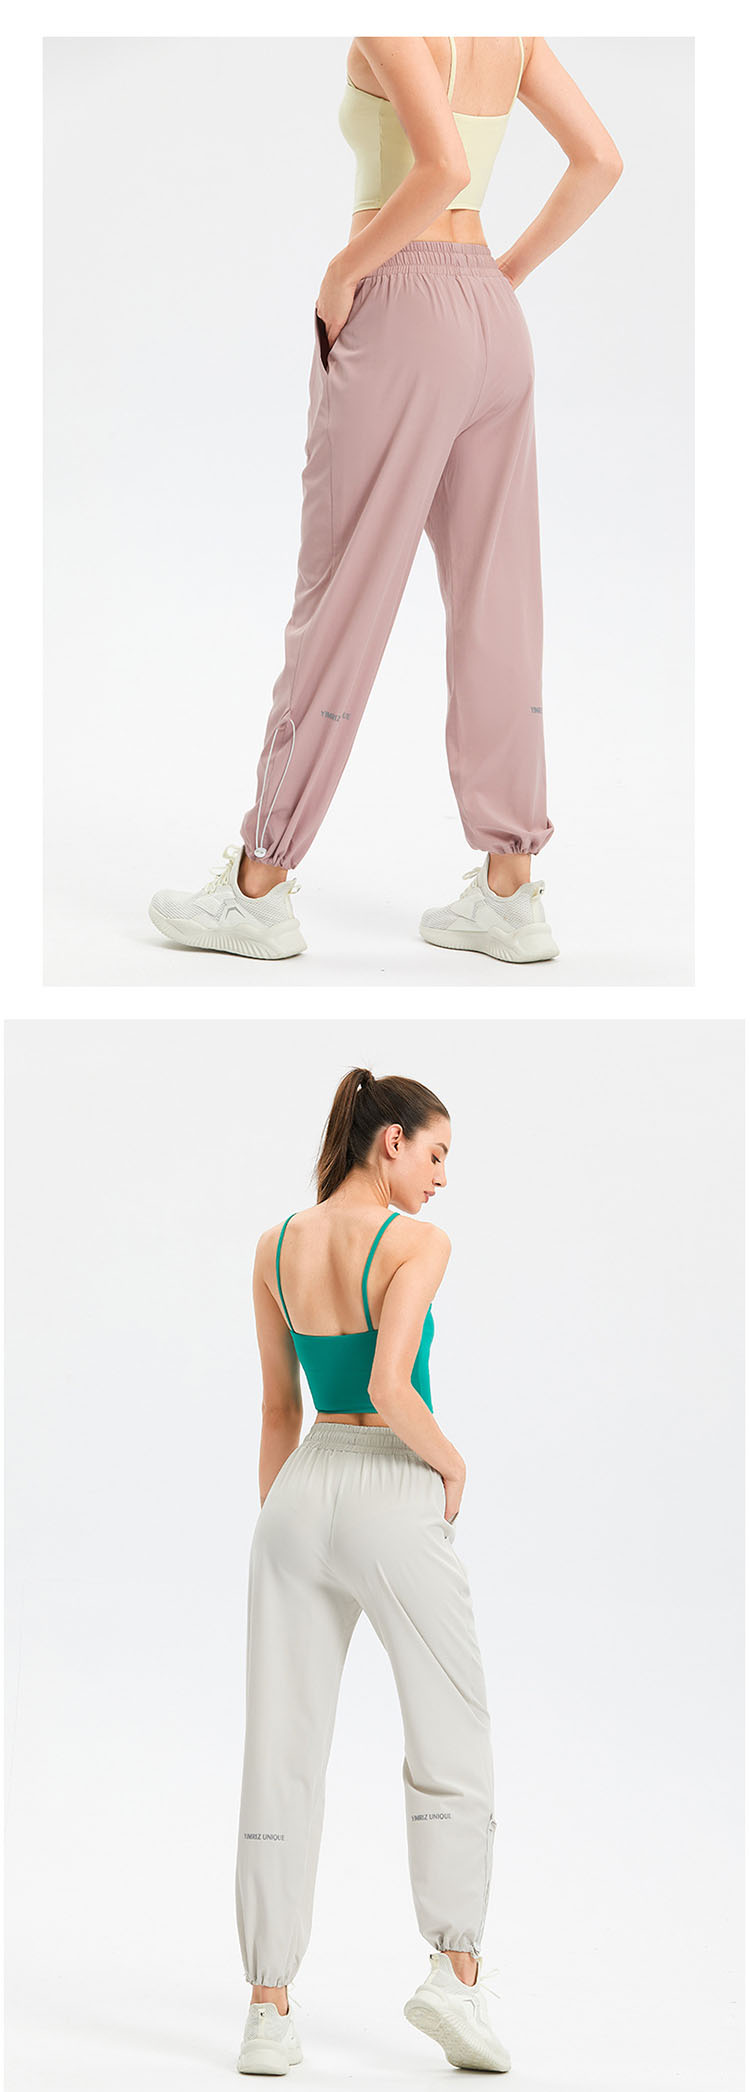 Fits comfortably to the waist and hides belly fat.